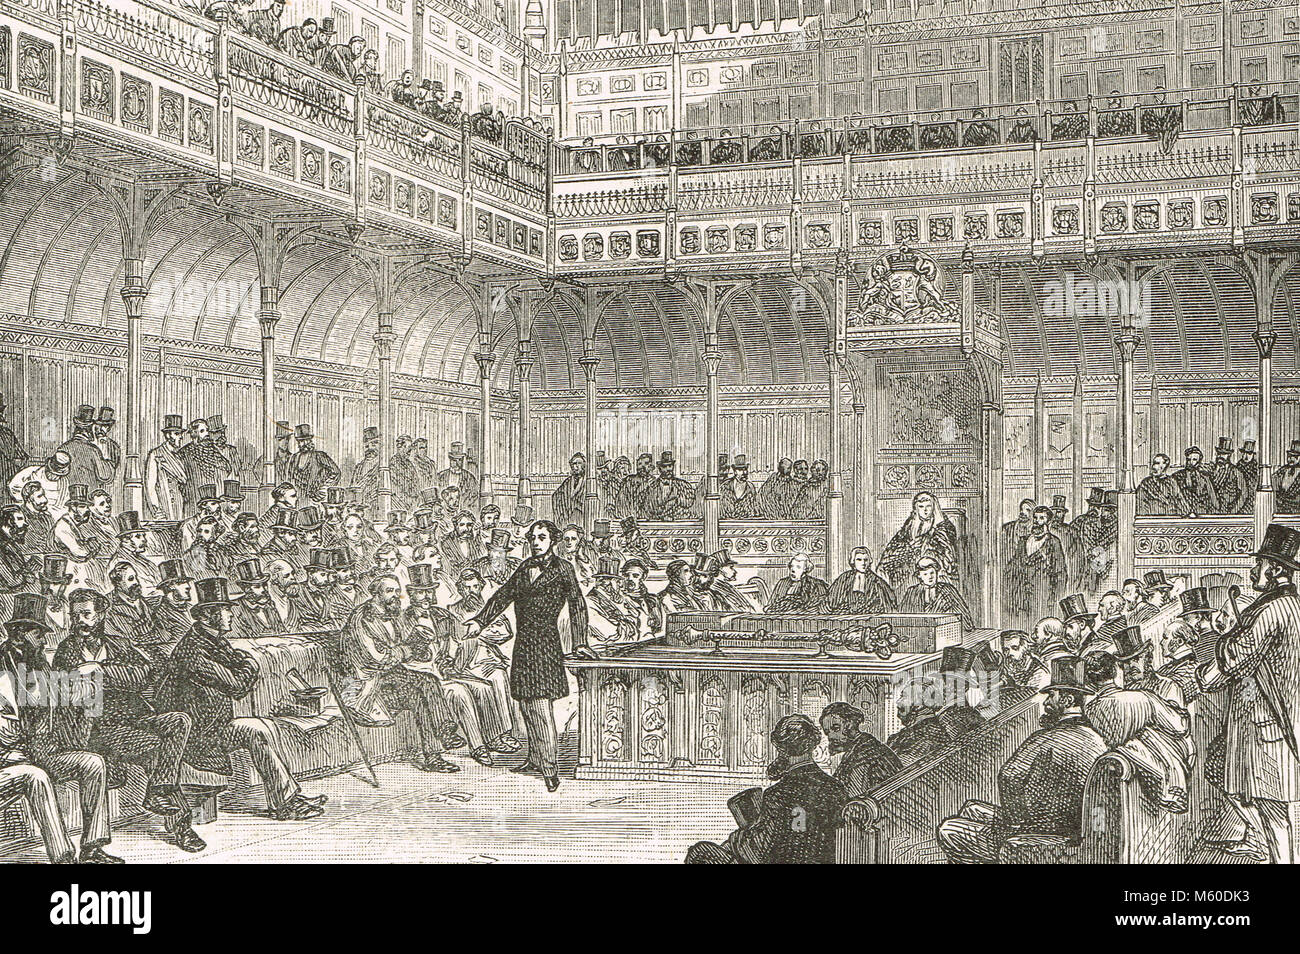 Benjamin Disraeli introducing the Reform bill of 1867.  The Representation of the People Act - Stock Image